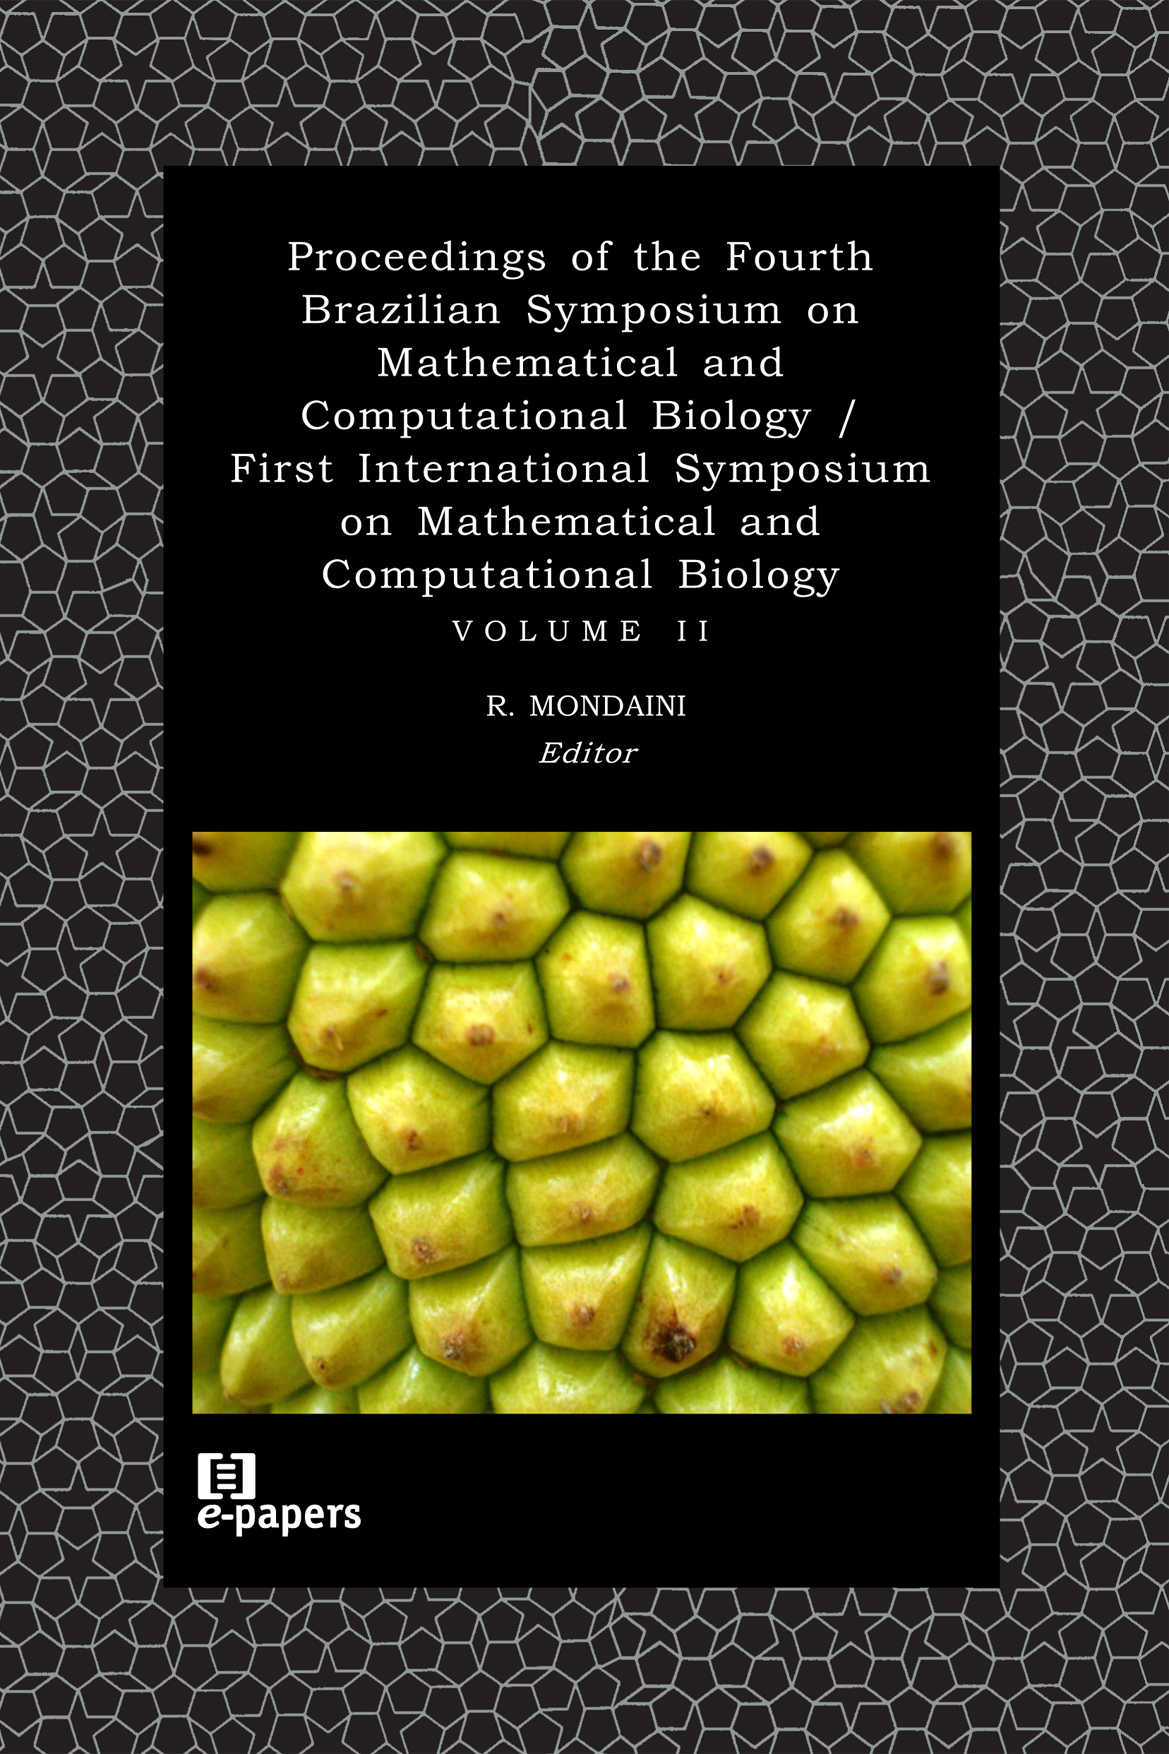 Proc. of the Fourth Brazilian Symp. on Mathematical and Computational Biology vol.2: First International Symposium on Mathematical and Comp Biology